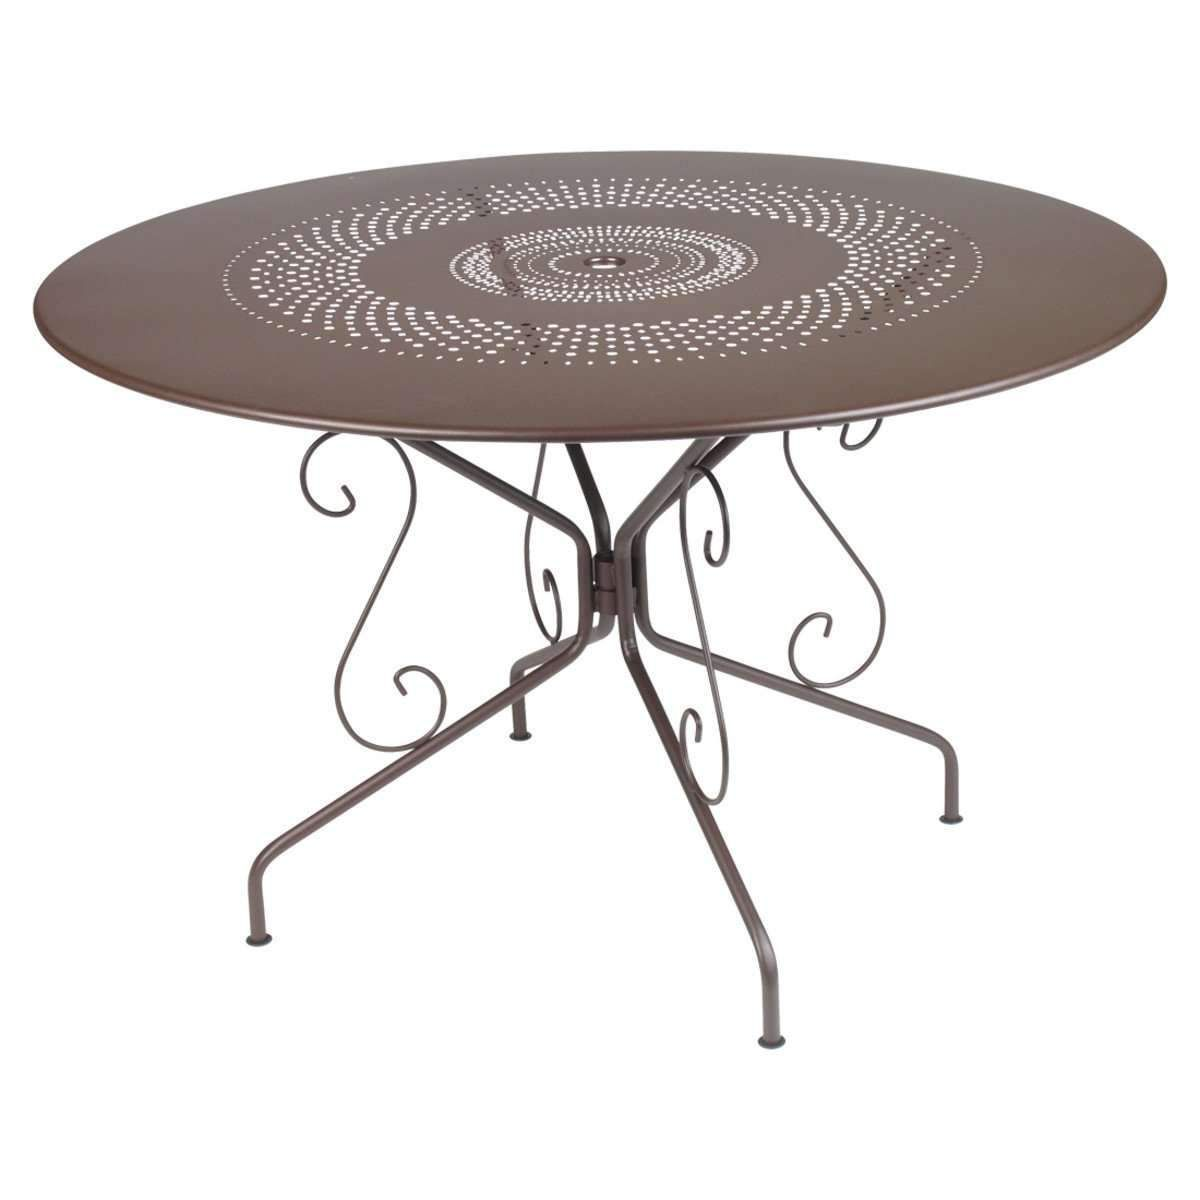 Fermob Montmarte 46 Round Table General More And More Young Garden Beginners Discover Their Own Vegetab In 2020 Steel Dining Table Metal Garden Table Garden Table